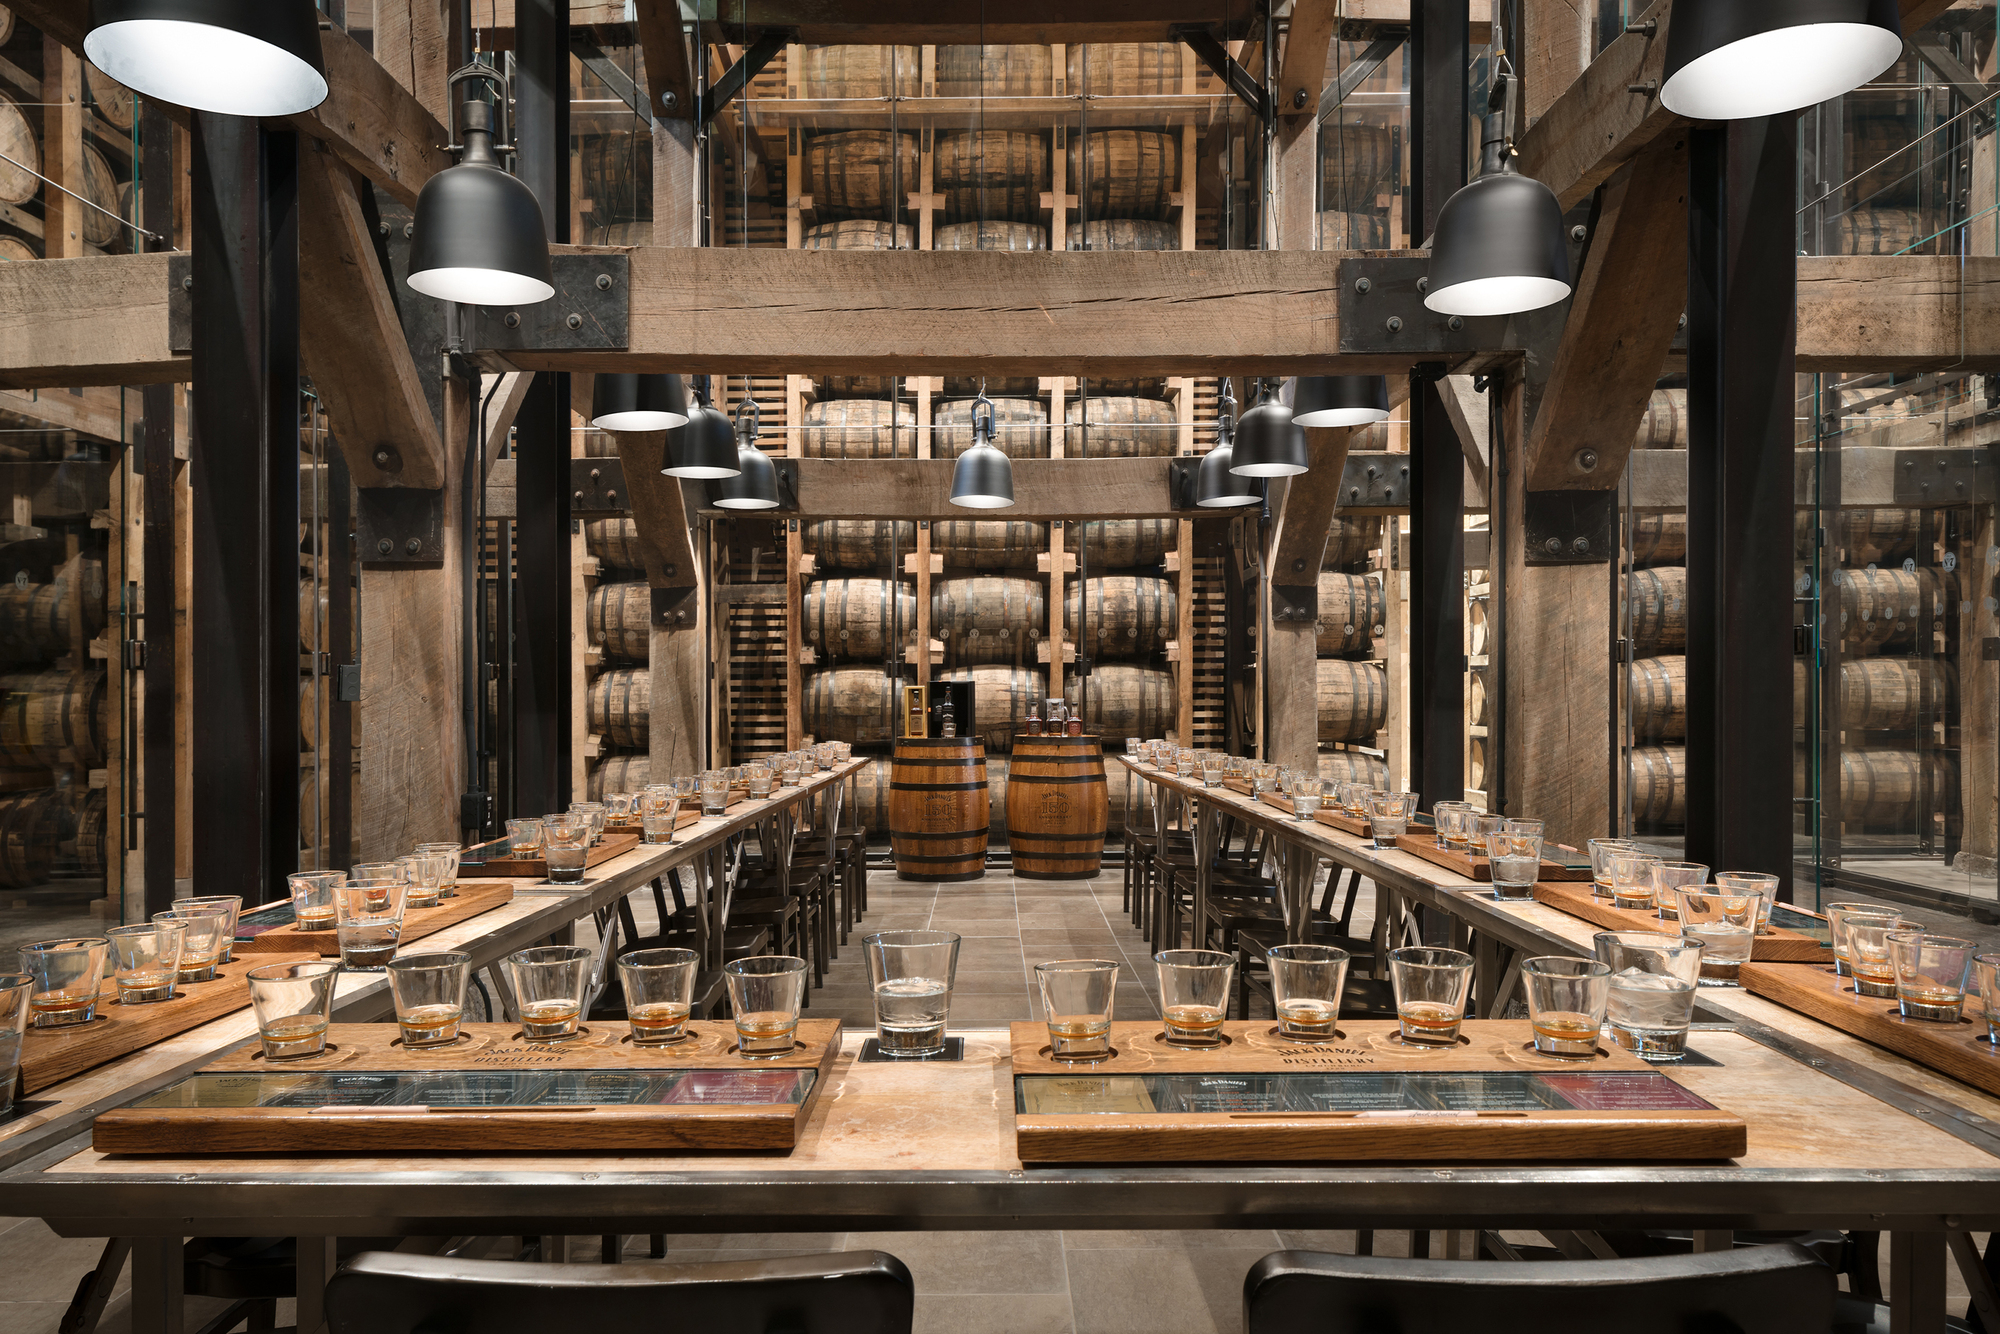 Tasting room in Jack Daniel's renovated Distillery Barrel House originally built in 1938, Lynchburg, Tennessee [OS] [2000×1334]